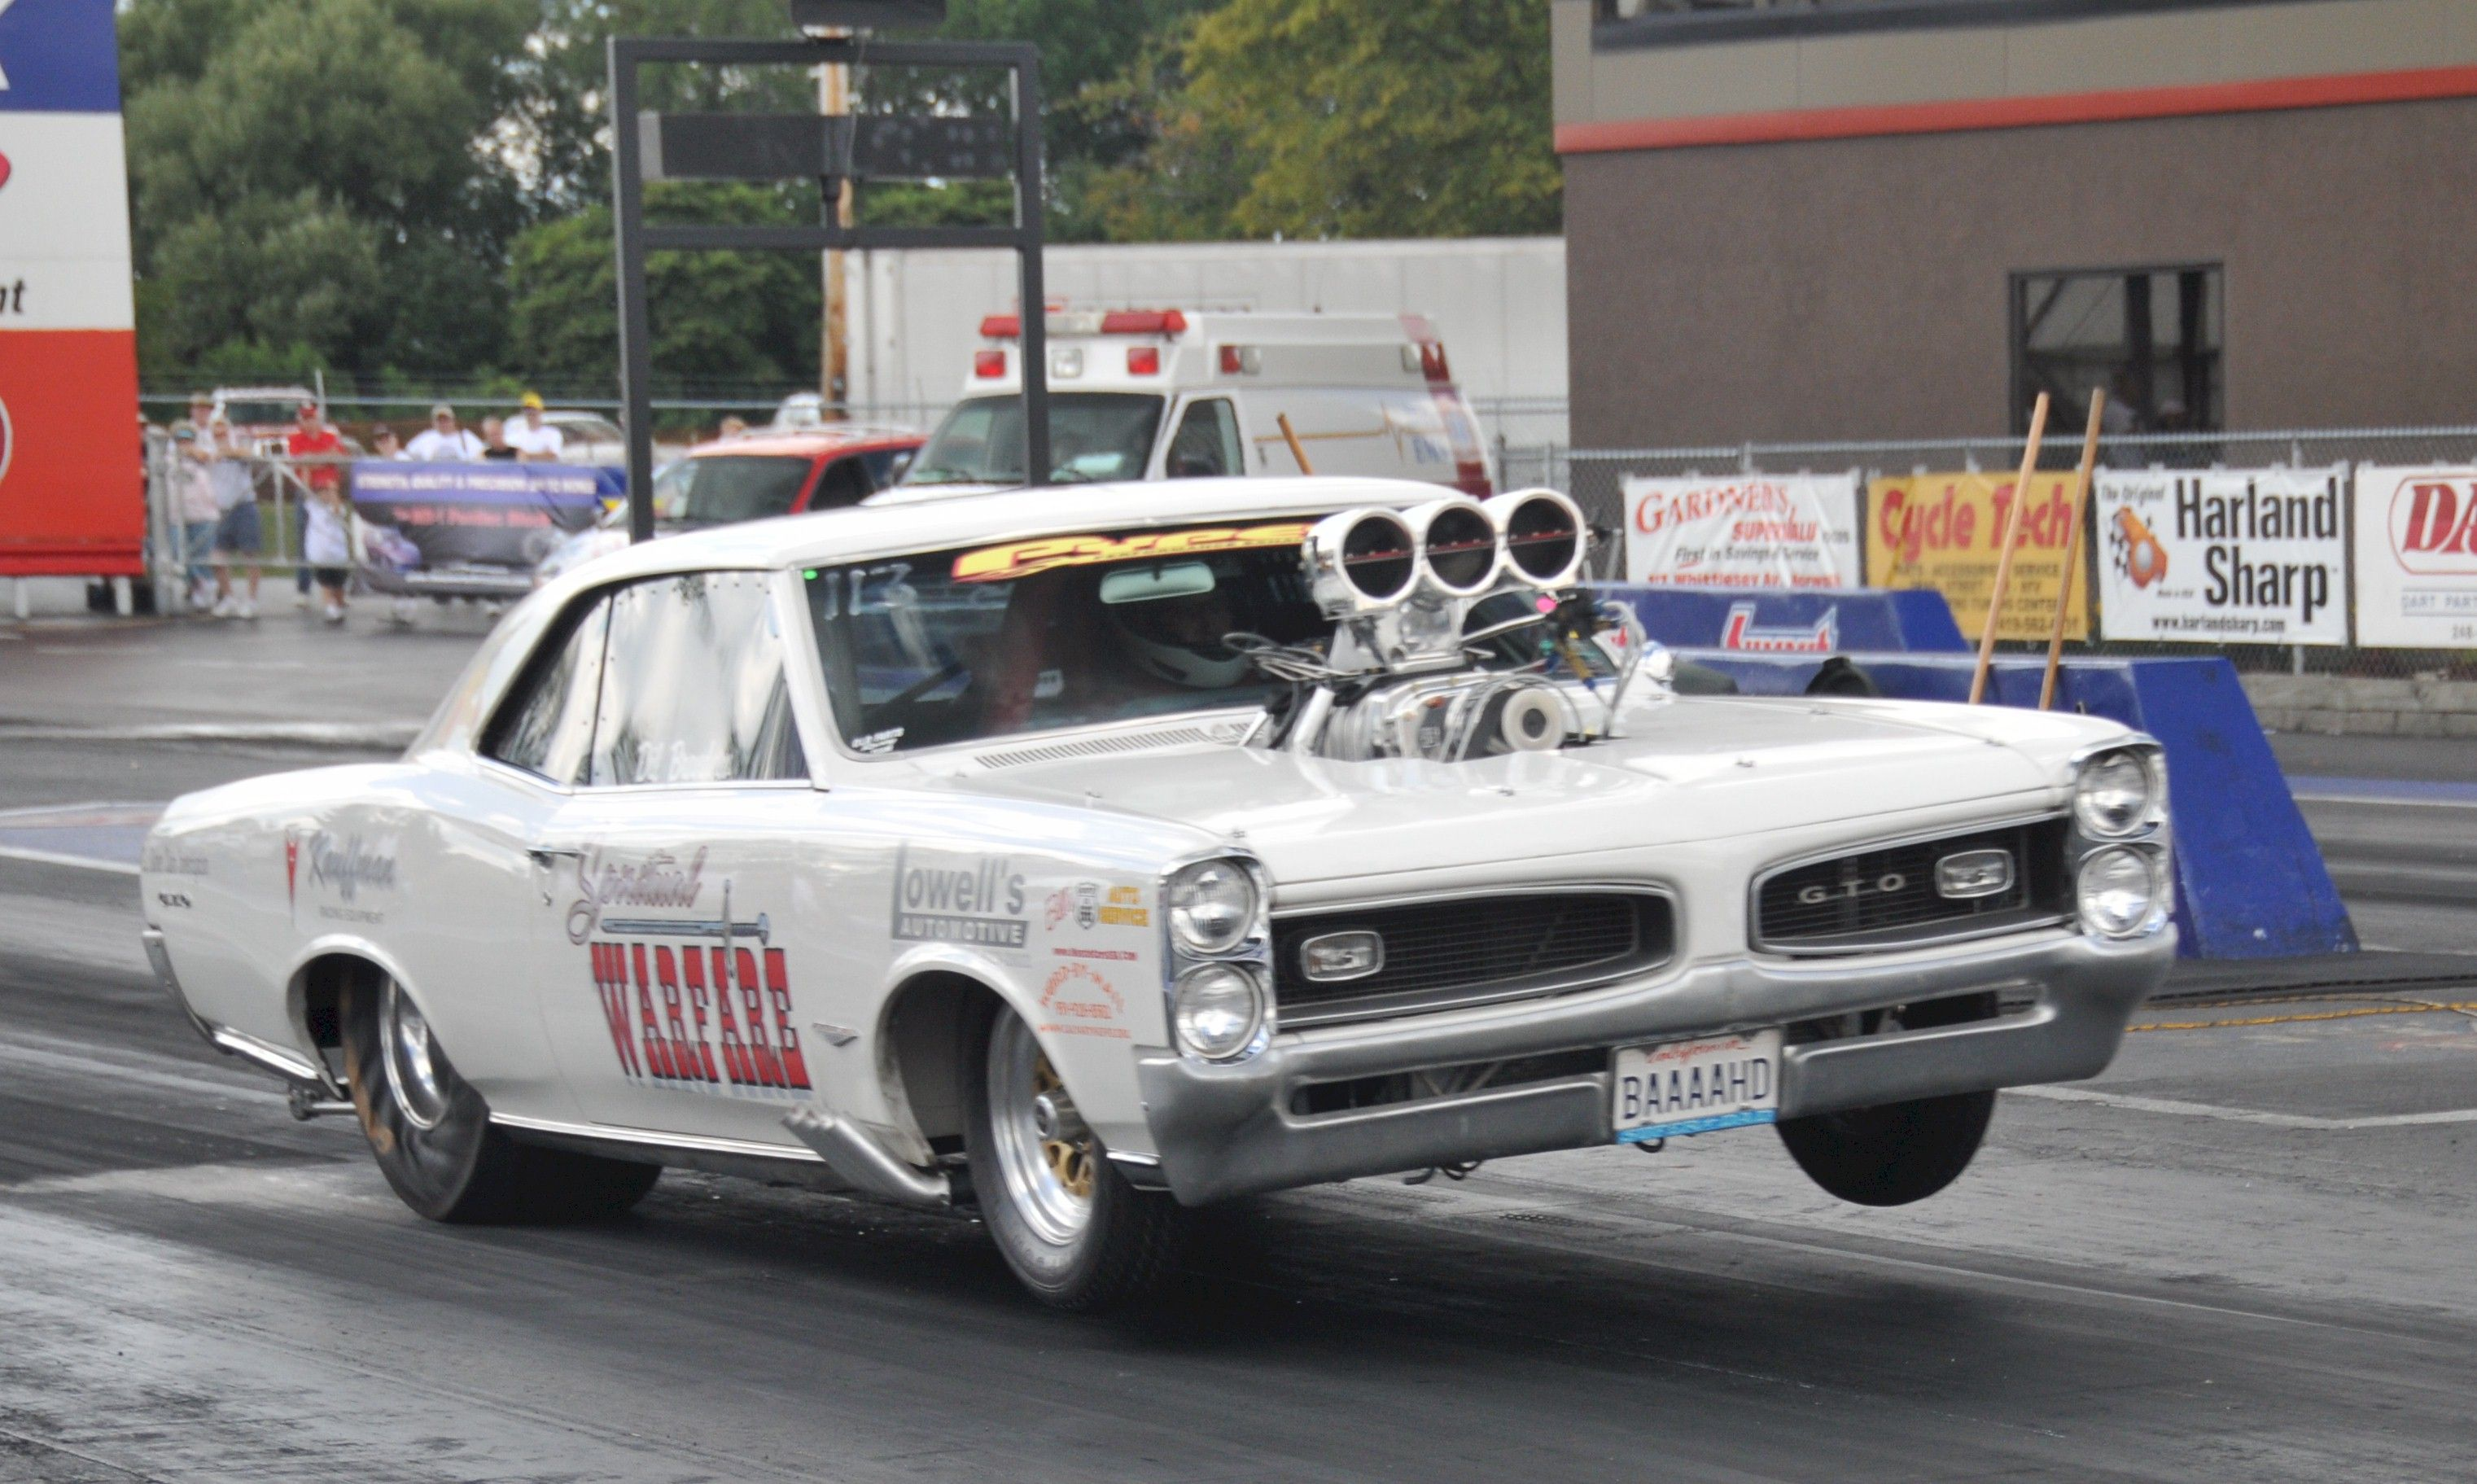 Pro mod chevy nova re pin brought to you by carinsurance at houseofinsurance in eugene oregon classic cars trucks van s and hot rods